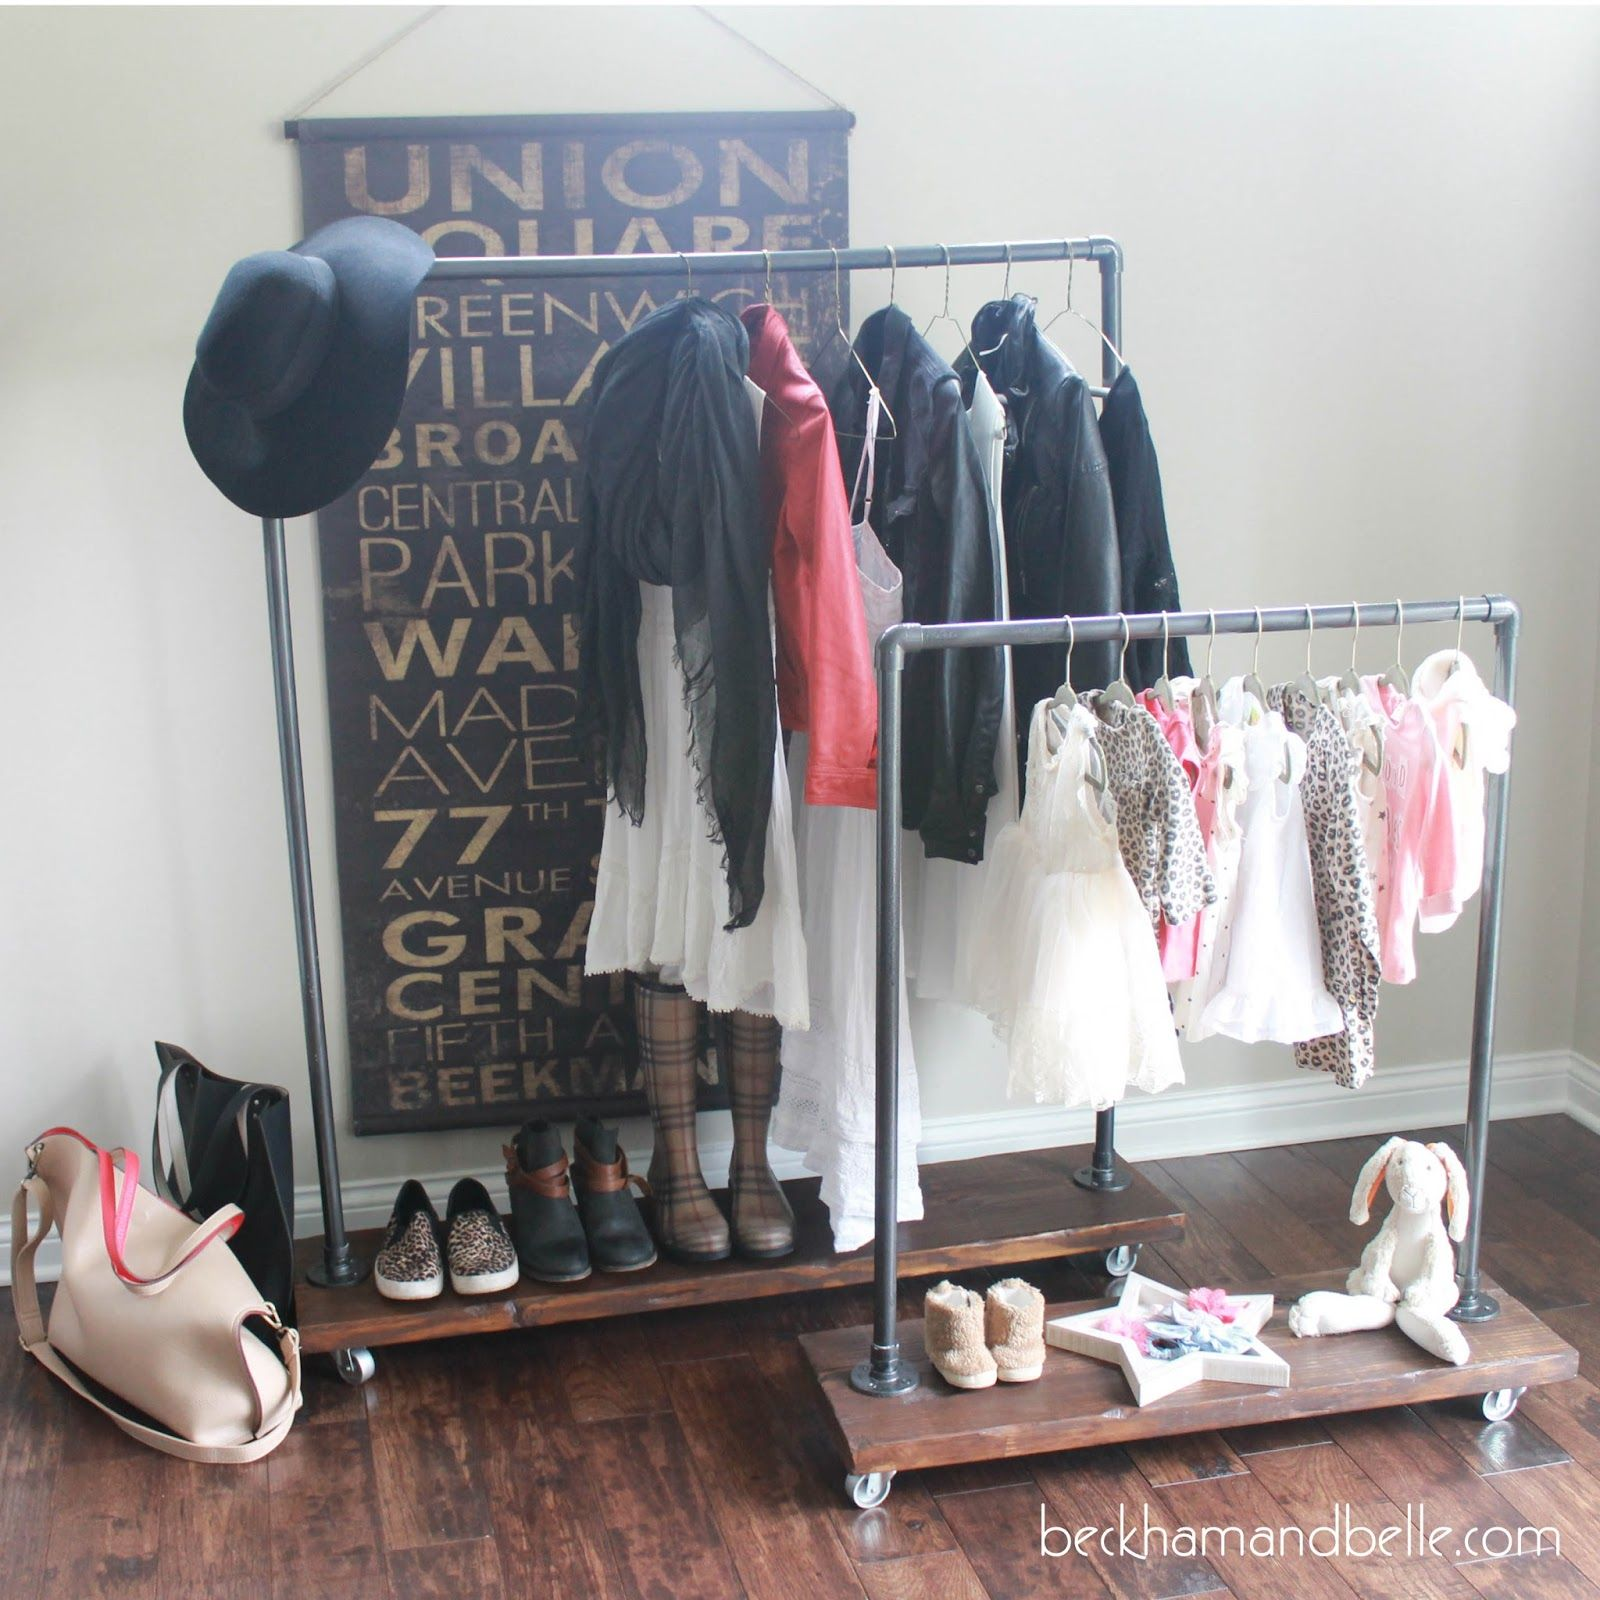 dress engrossing blog project designs rack up fashion a playroom tassel garland center kids ikea storage wells ago as clothing files style wardrobe